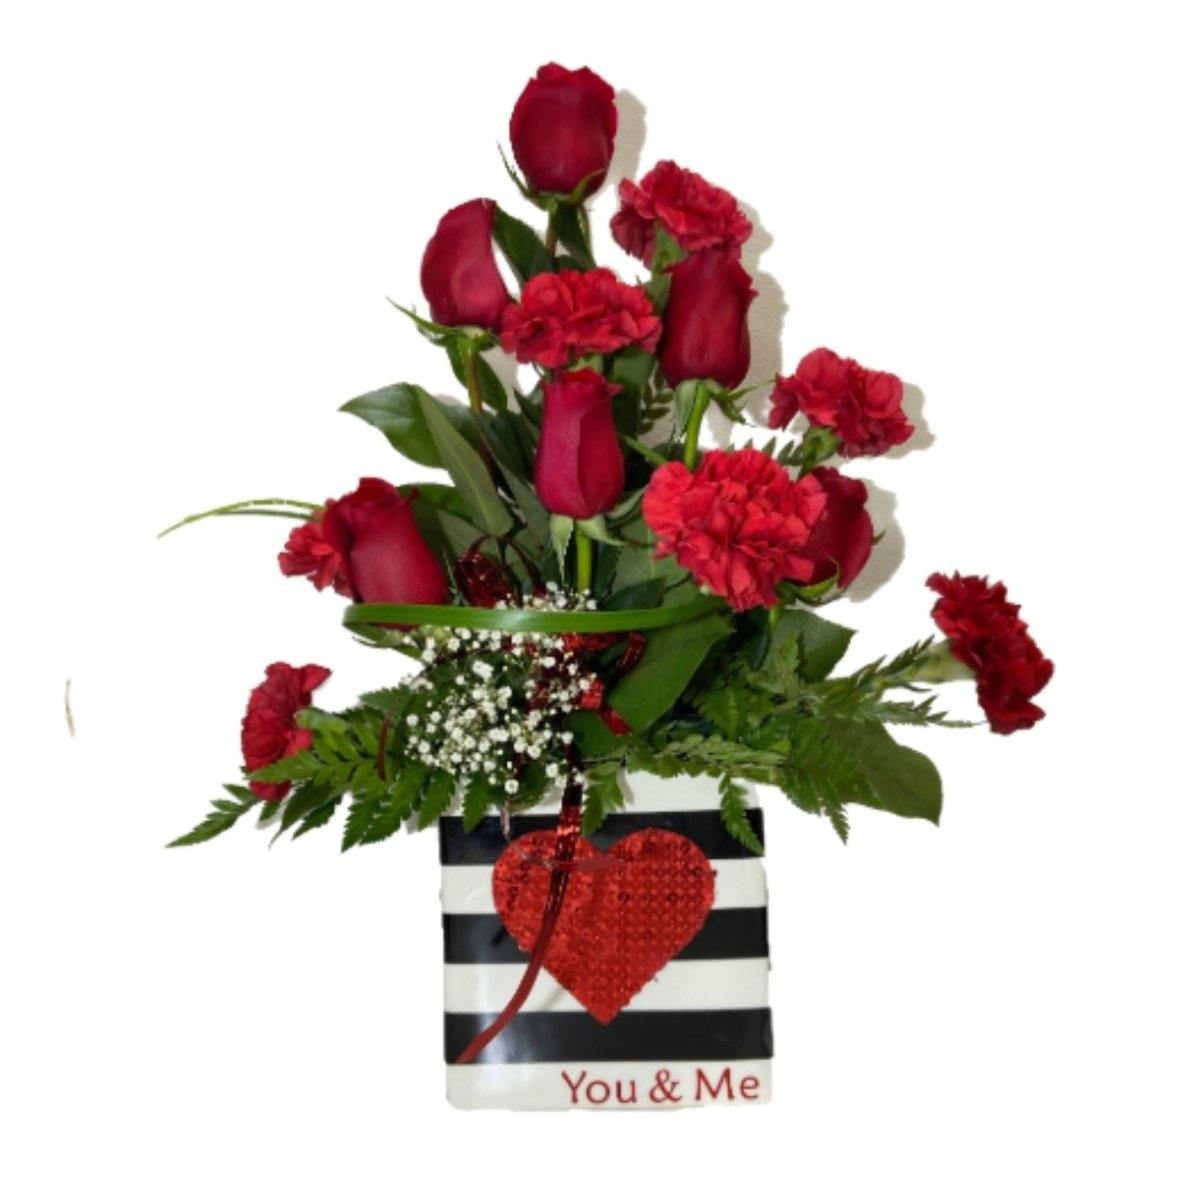 You & Me Arrangement - Shalimar Flower Shop